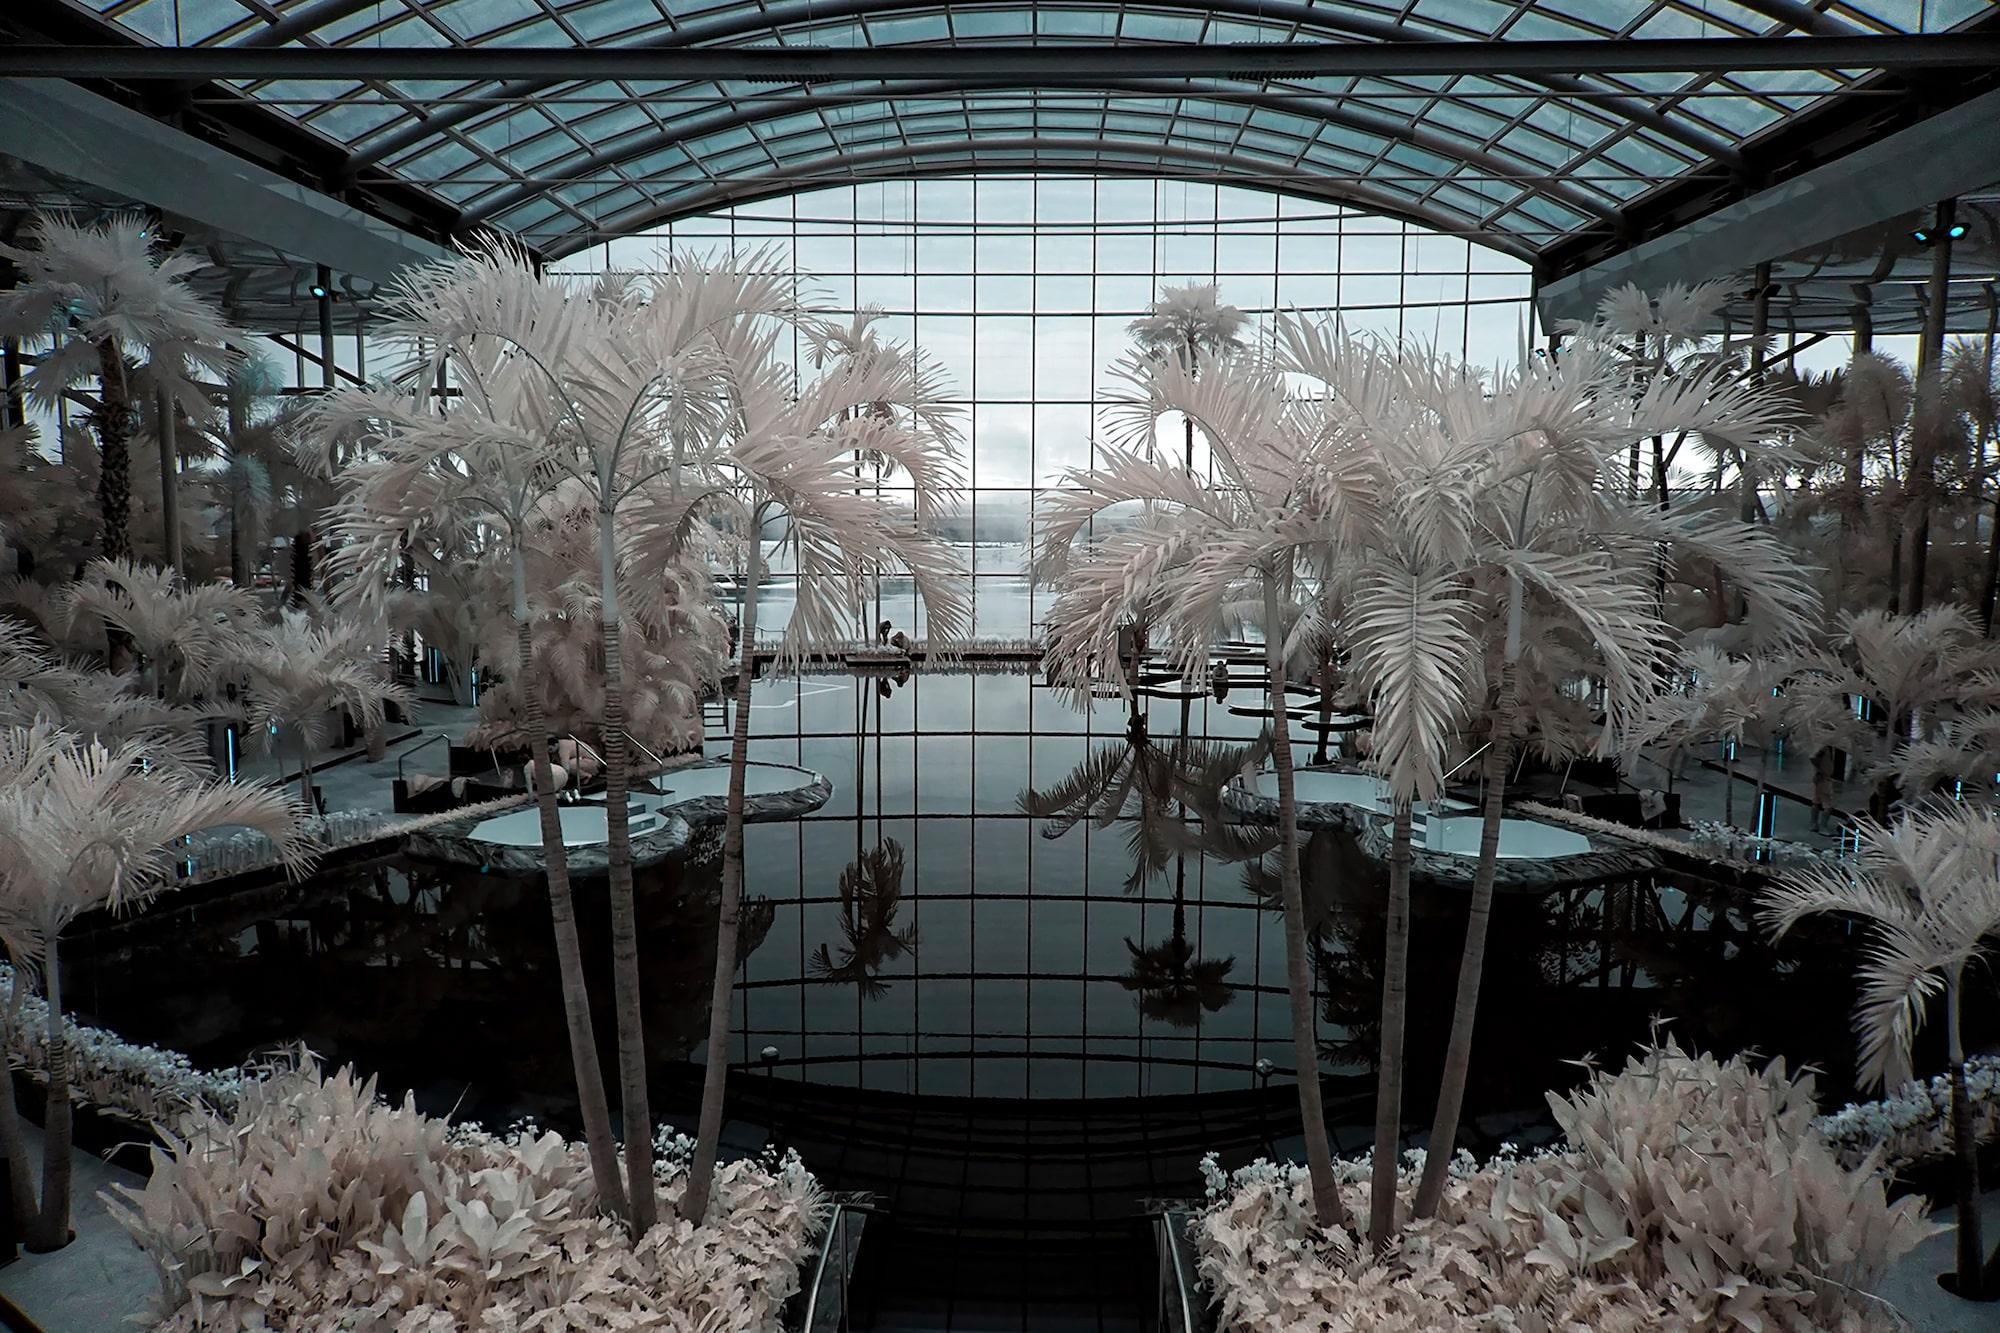 alin-popescu-sony-alpha-6000-infrared-shot-palm-trees-in-a-large-greenhouse